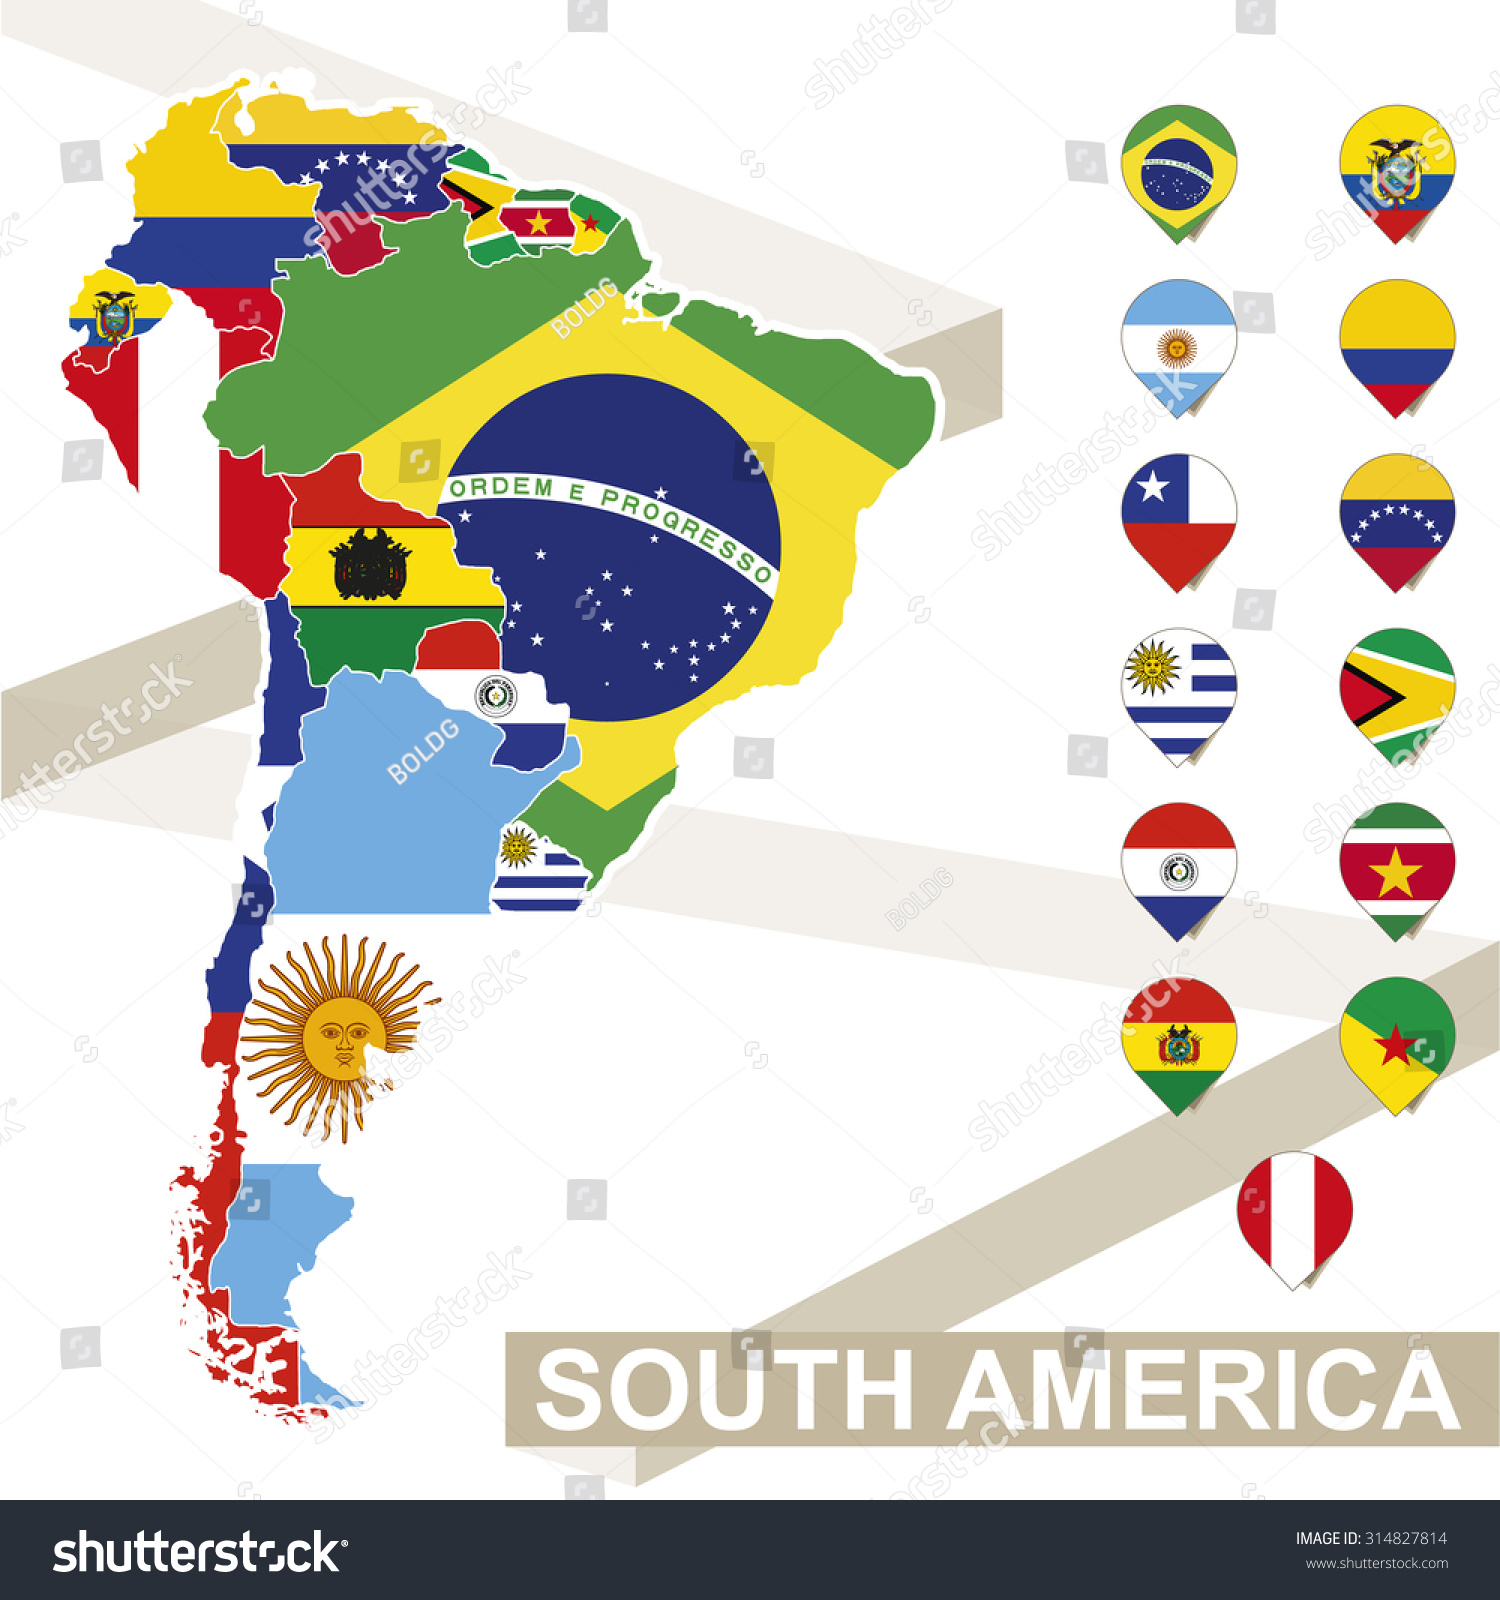 South America Map Flags South America Stock Vector - South america map and flags